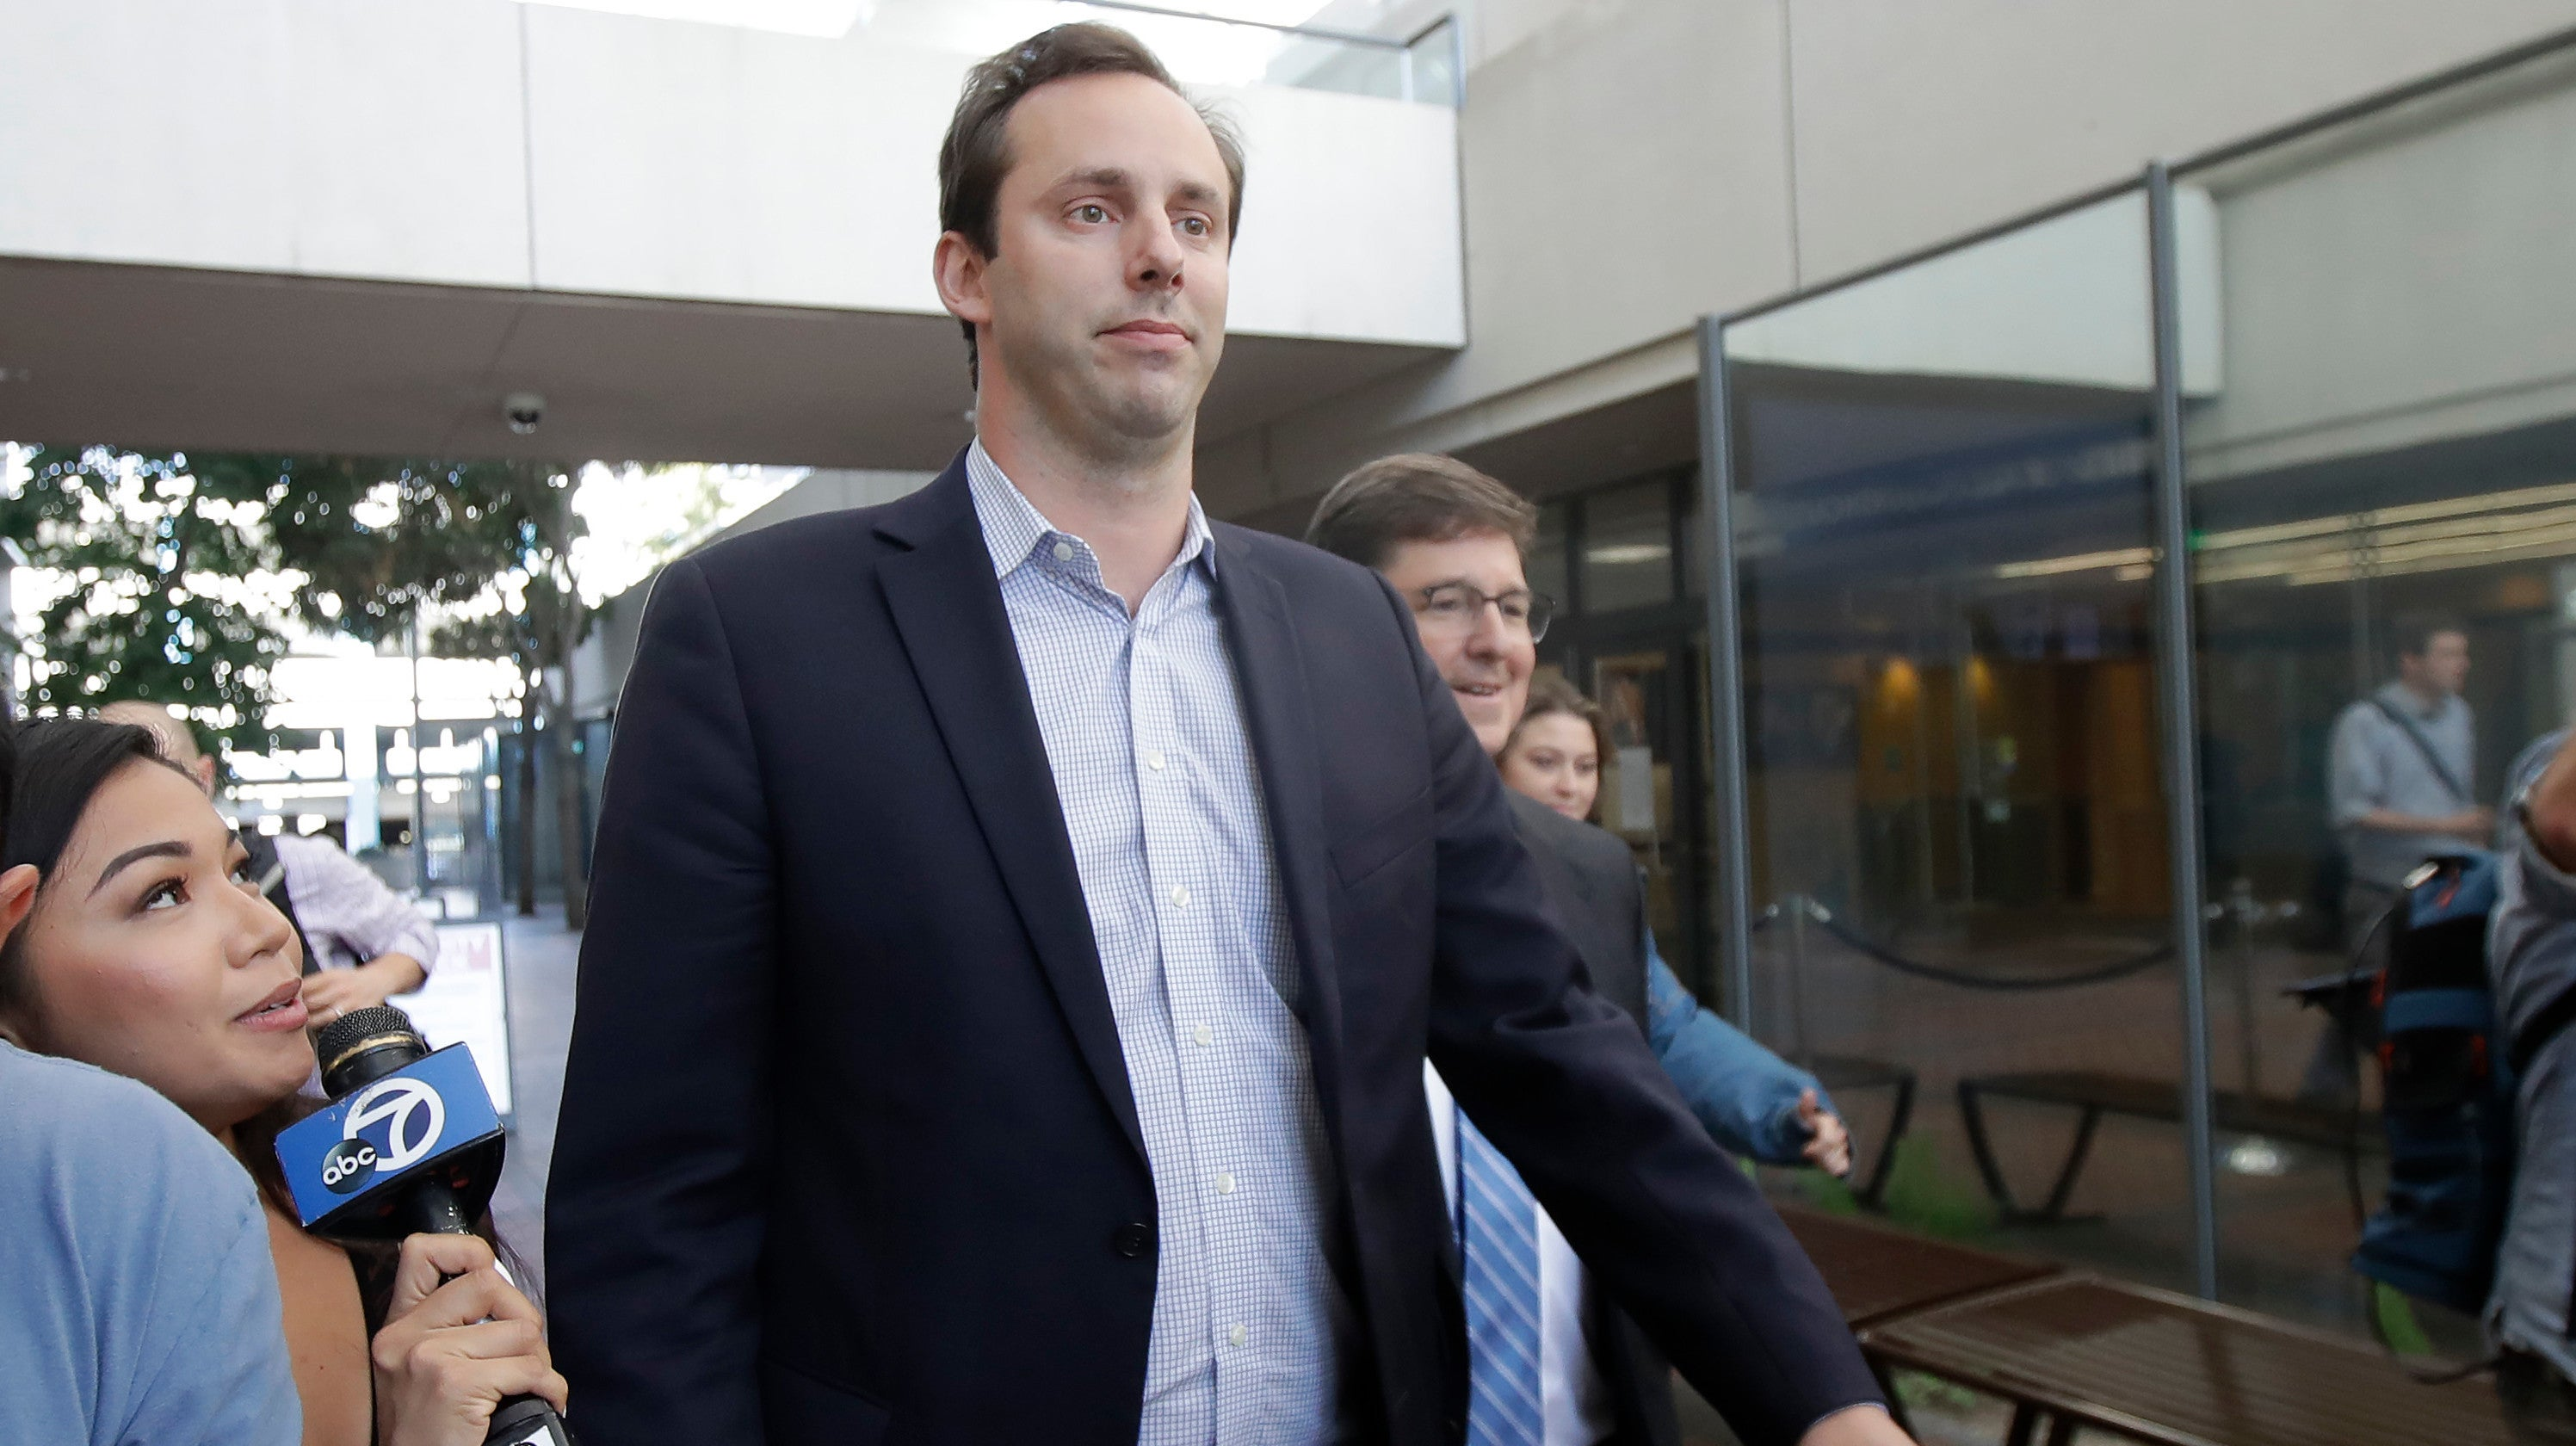 Ex-Google Self-Driving Car Guru Is Likely Headed To Prison